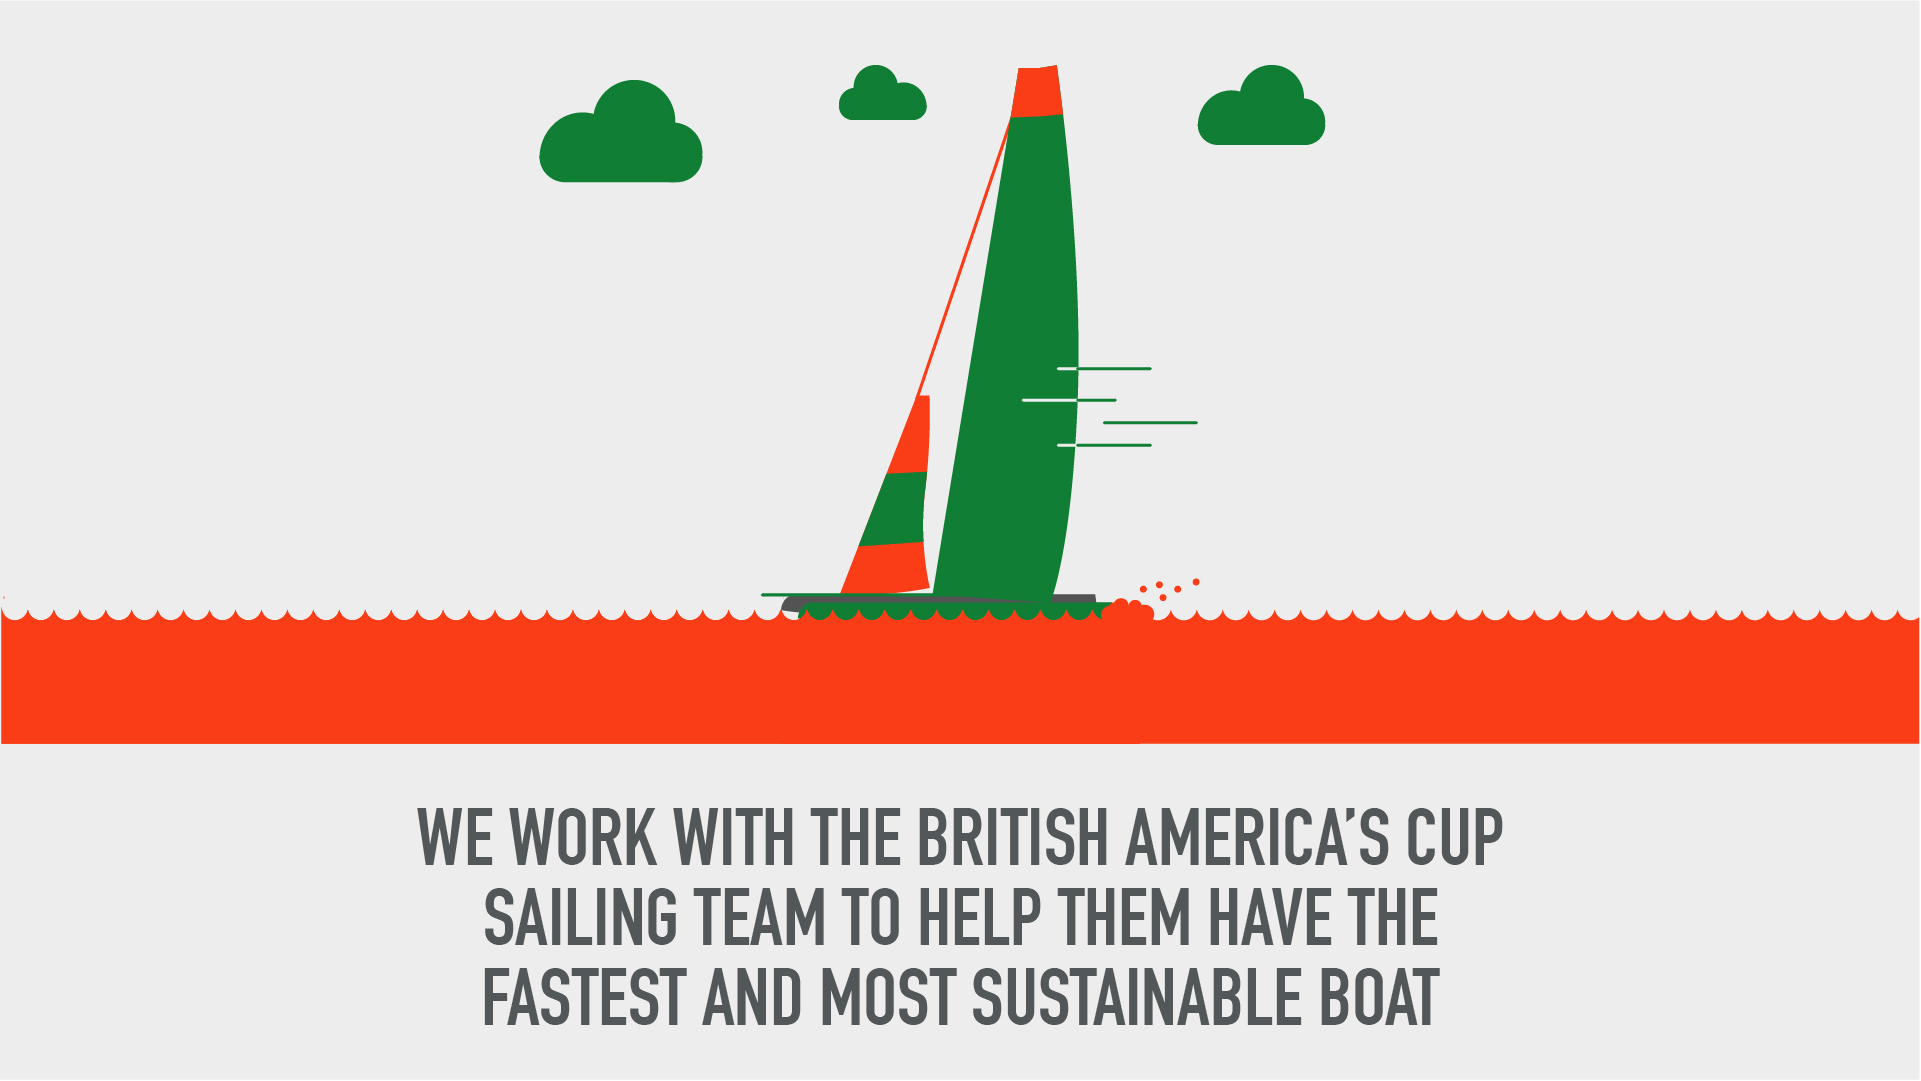 We work with the British America's Cup sailing team to help them have the fastest and most sustainable boat.jpg